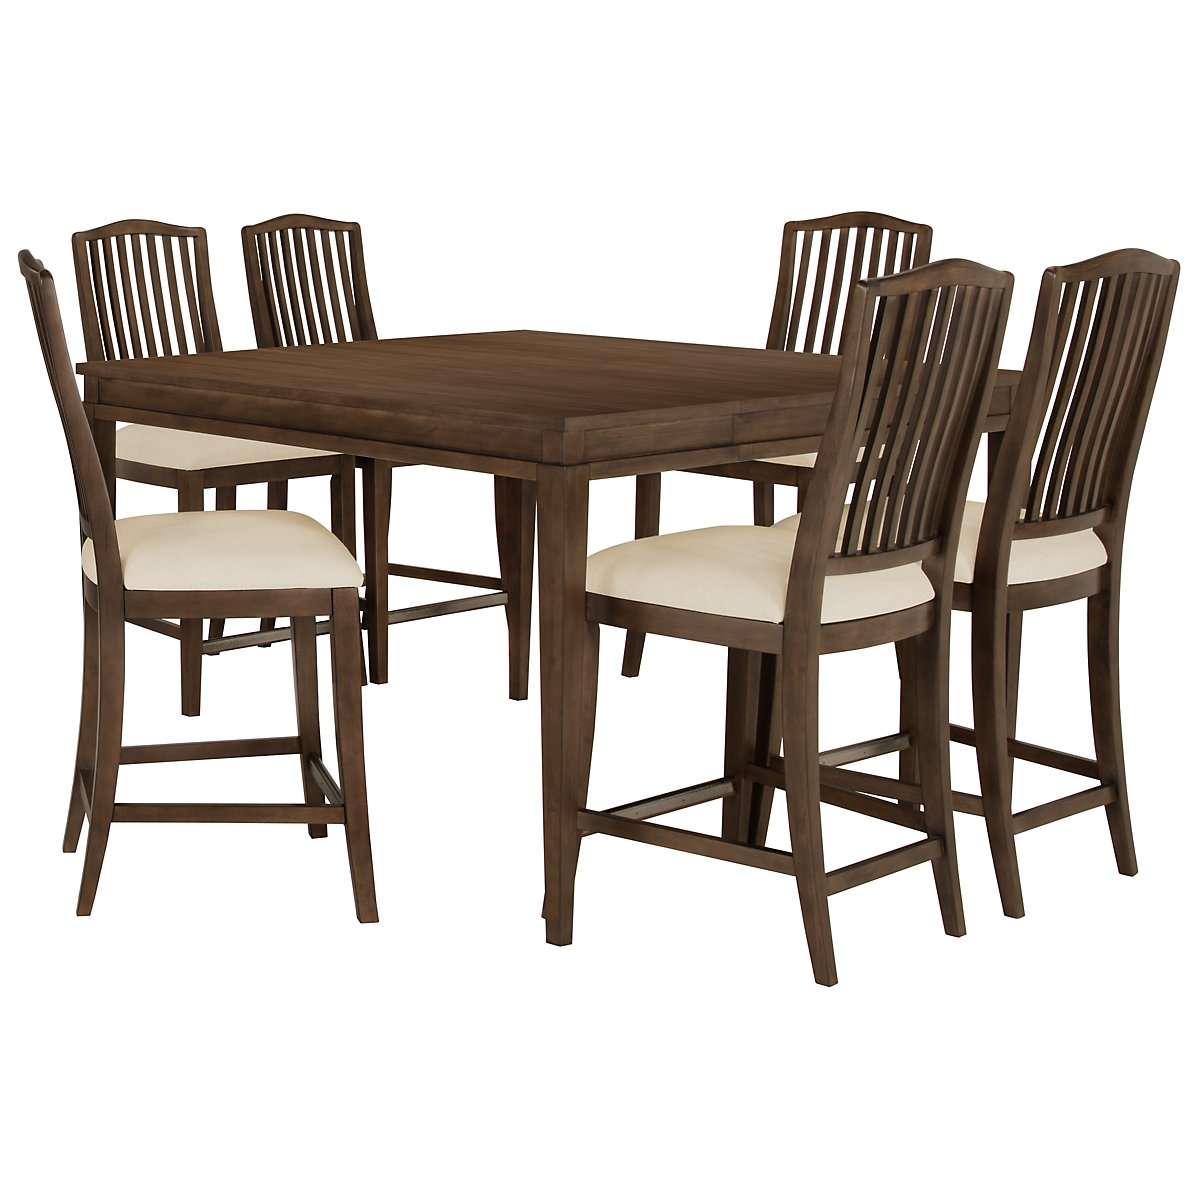 Preston Mid Tone High Table & 4 Wood Barstools